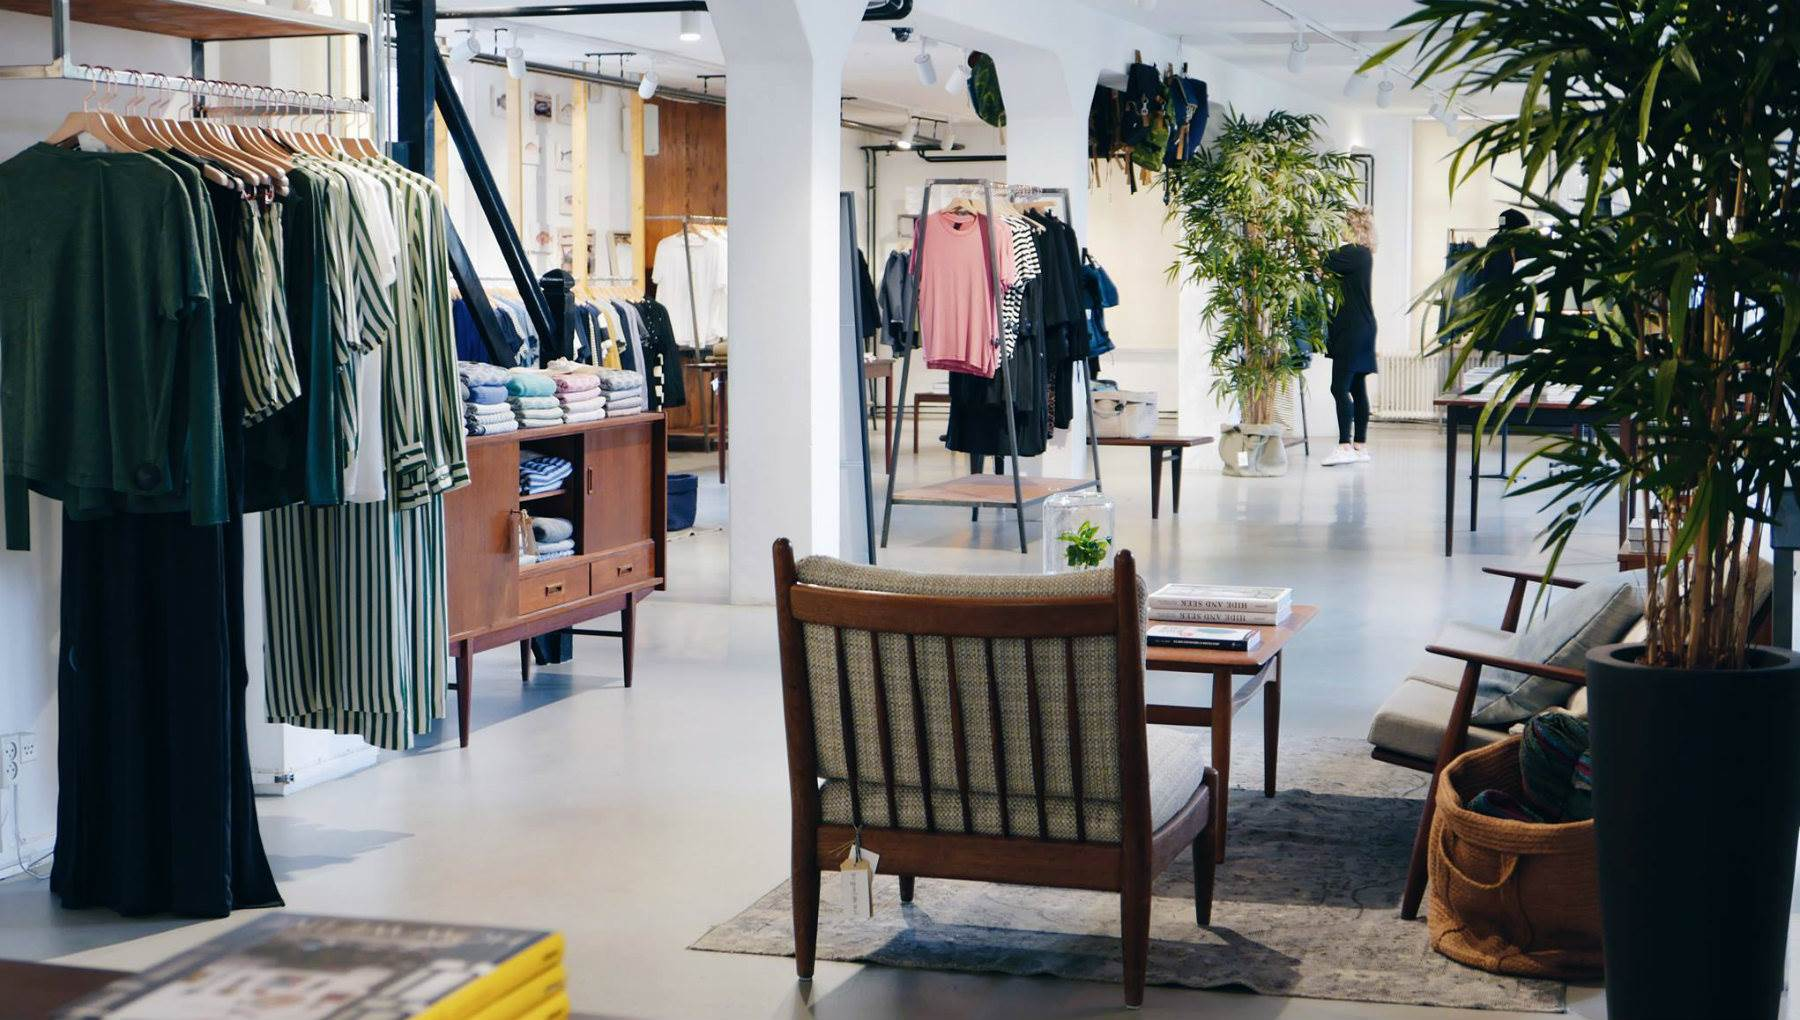 Top 10 concept stores in Amsterdam | I amsterdam